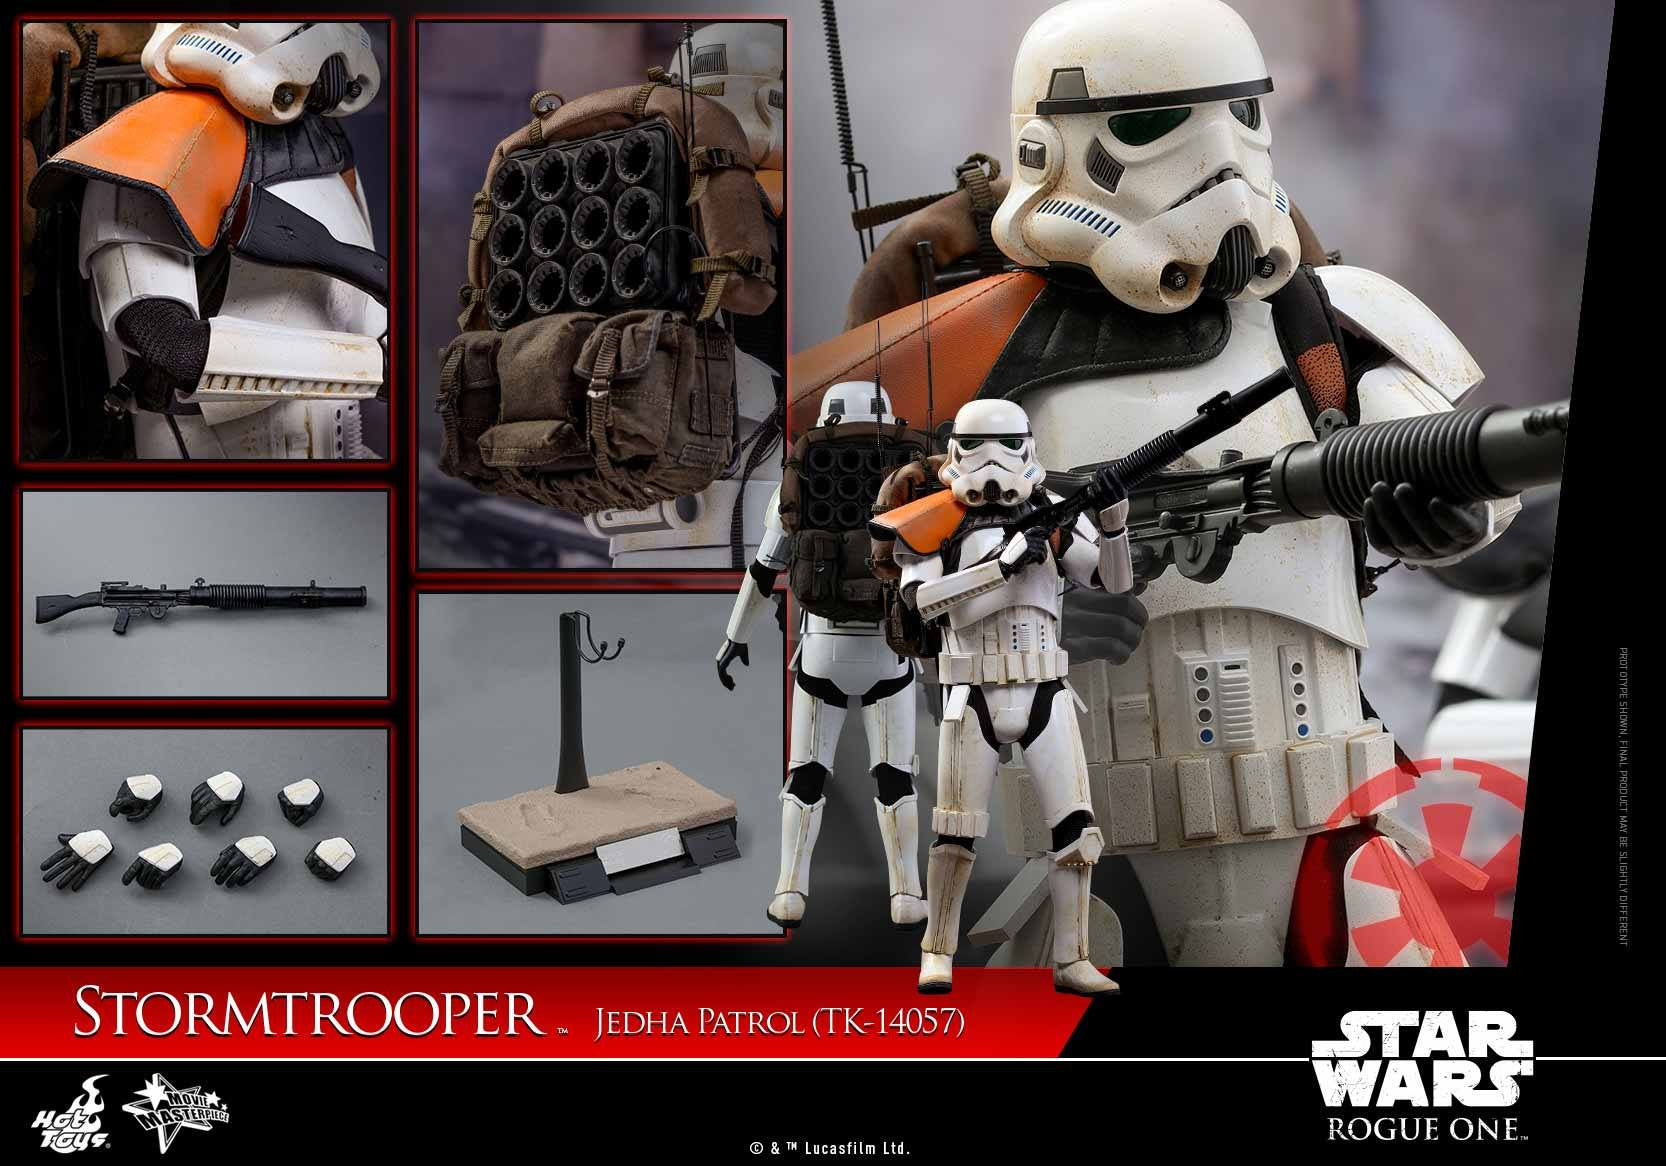 Hot Toys - MMS392 - Rogue One: A Star Wars Story - Stormtrooper Jedha Patrol (TK-14057) - Marvelous Toys - 7